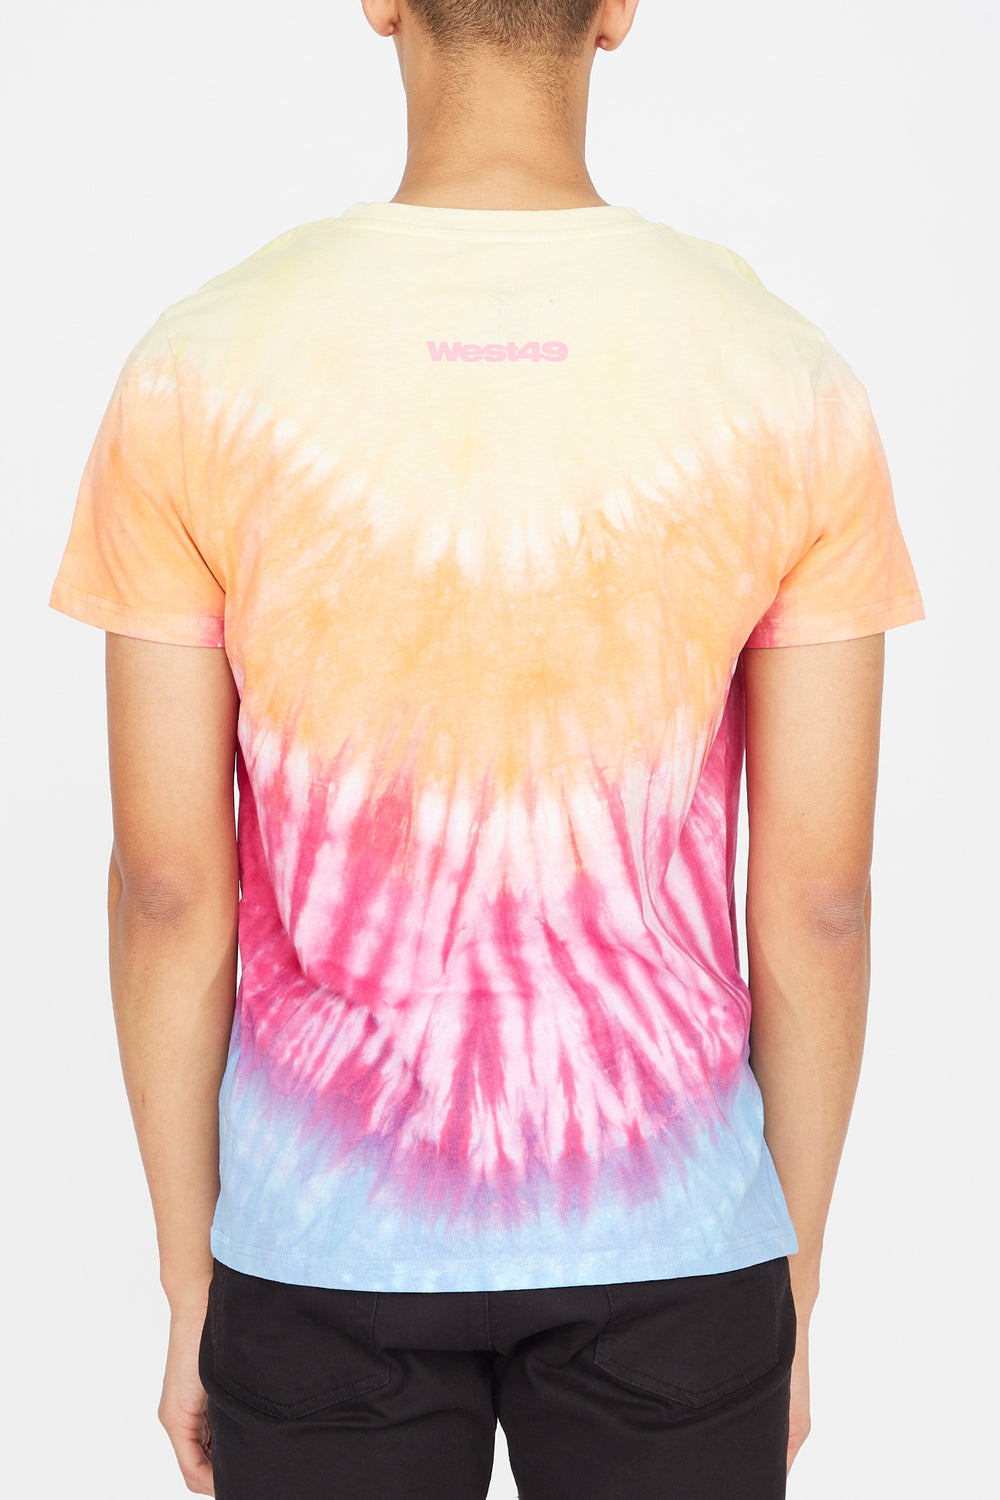 T-Shirt Tie-Dye Head in the Clouds Homme Multi